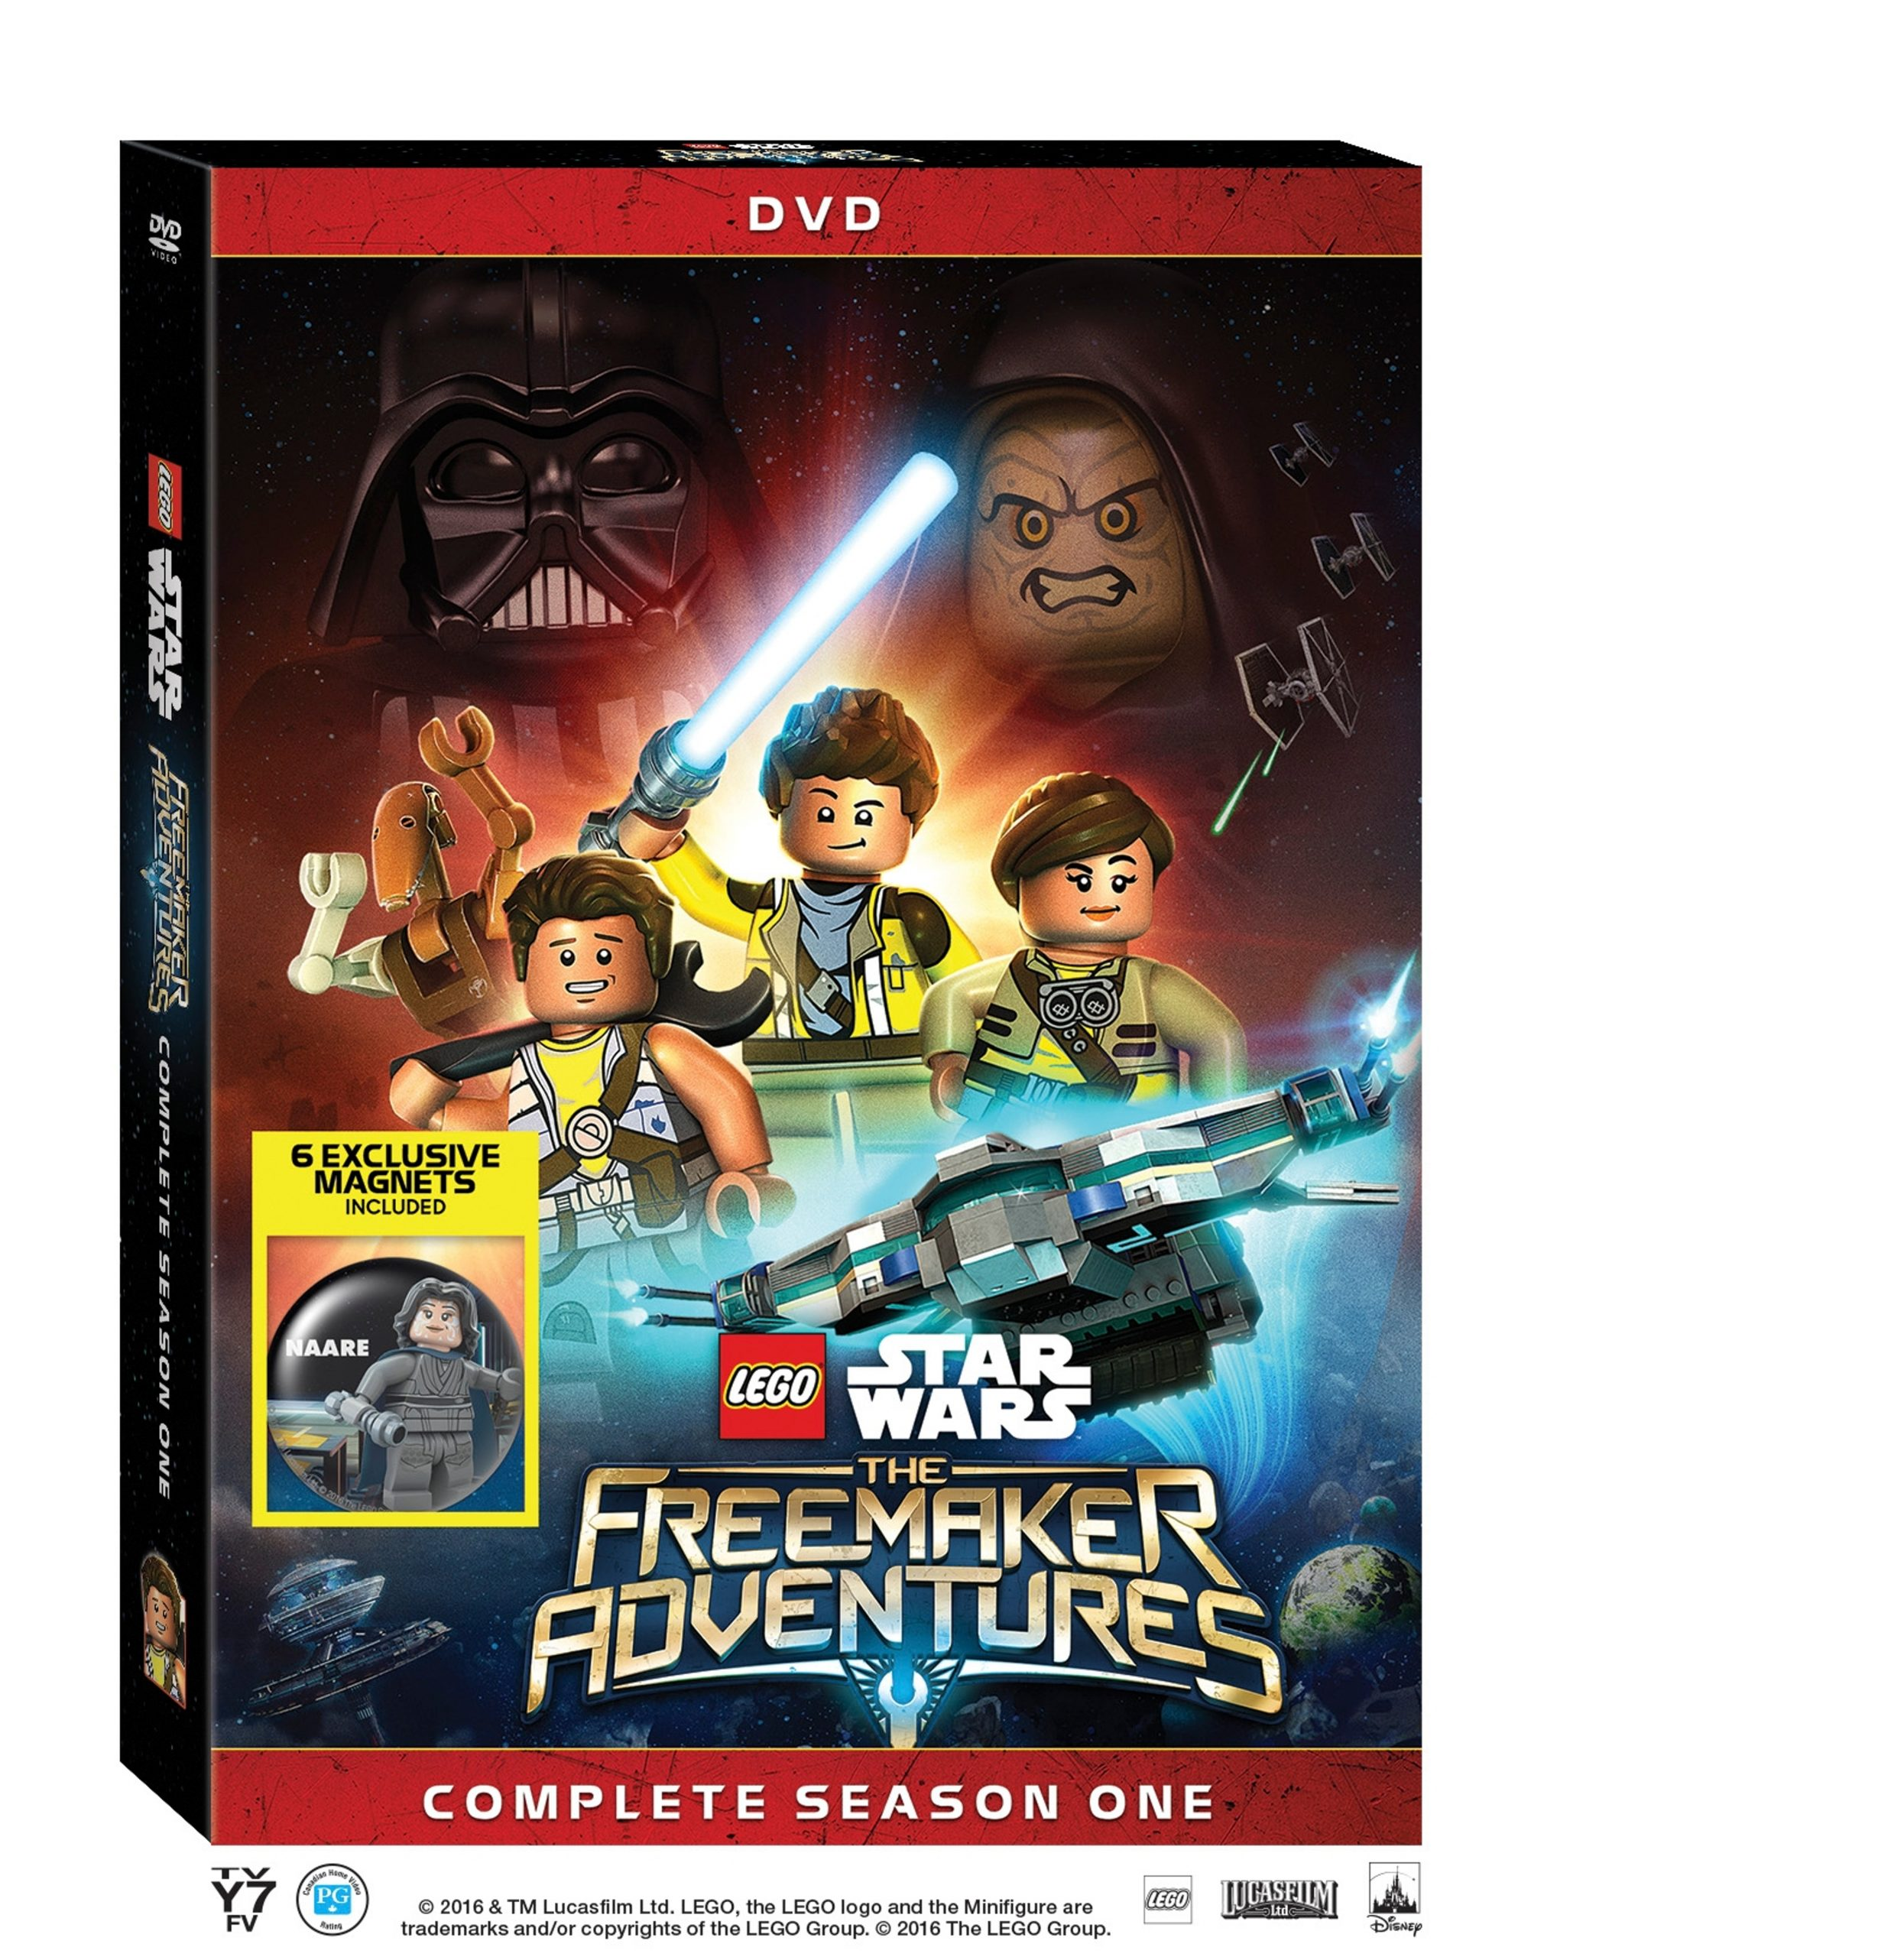 lego 5005360 star wars the freemaker adventures scaled